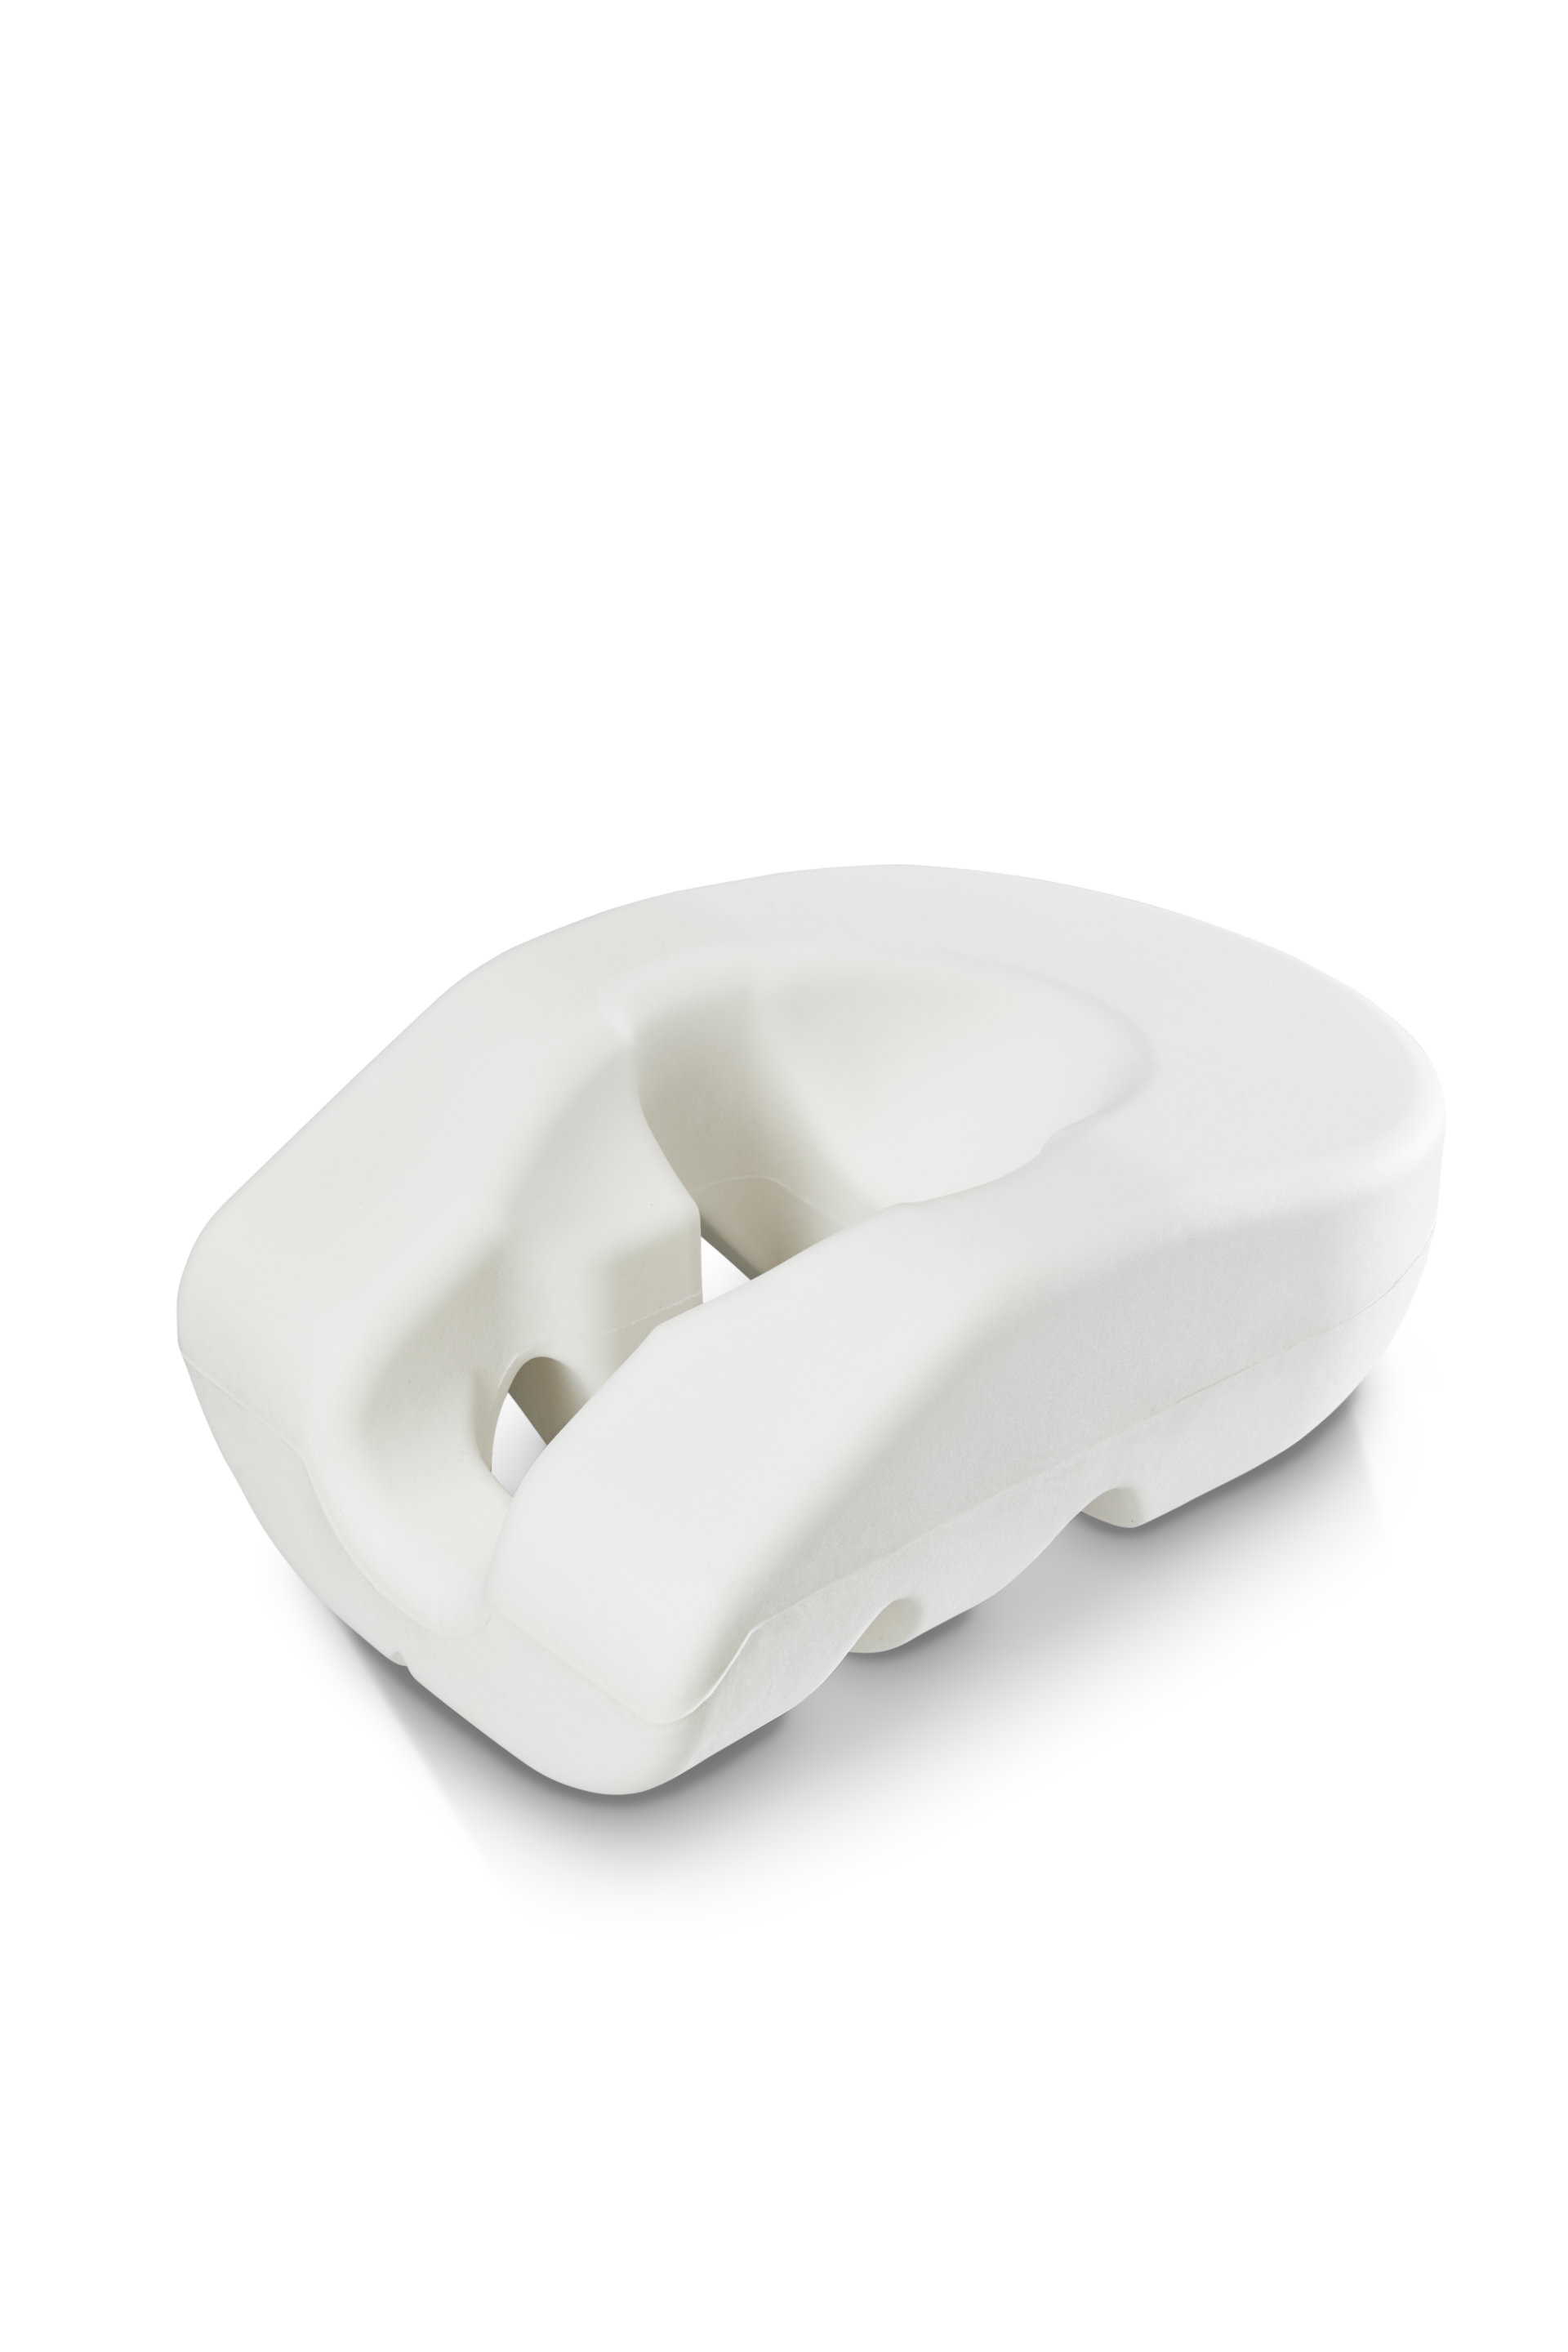 CS Small Prone Face cushion for child